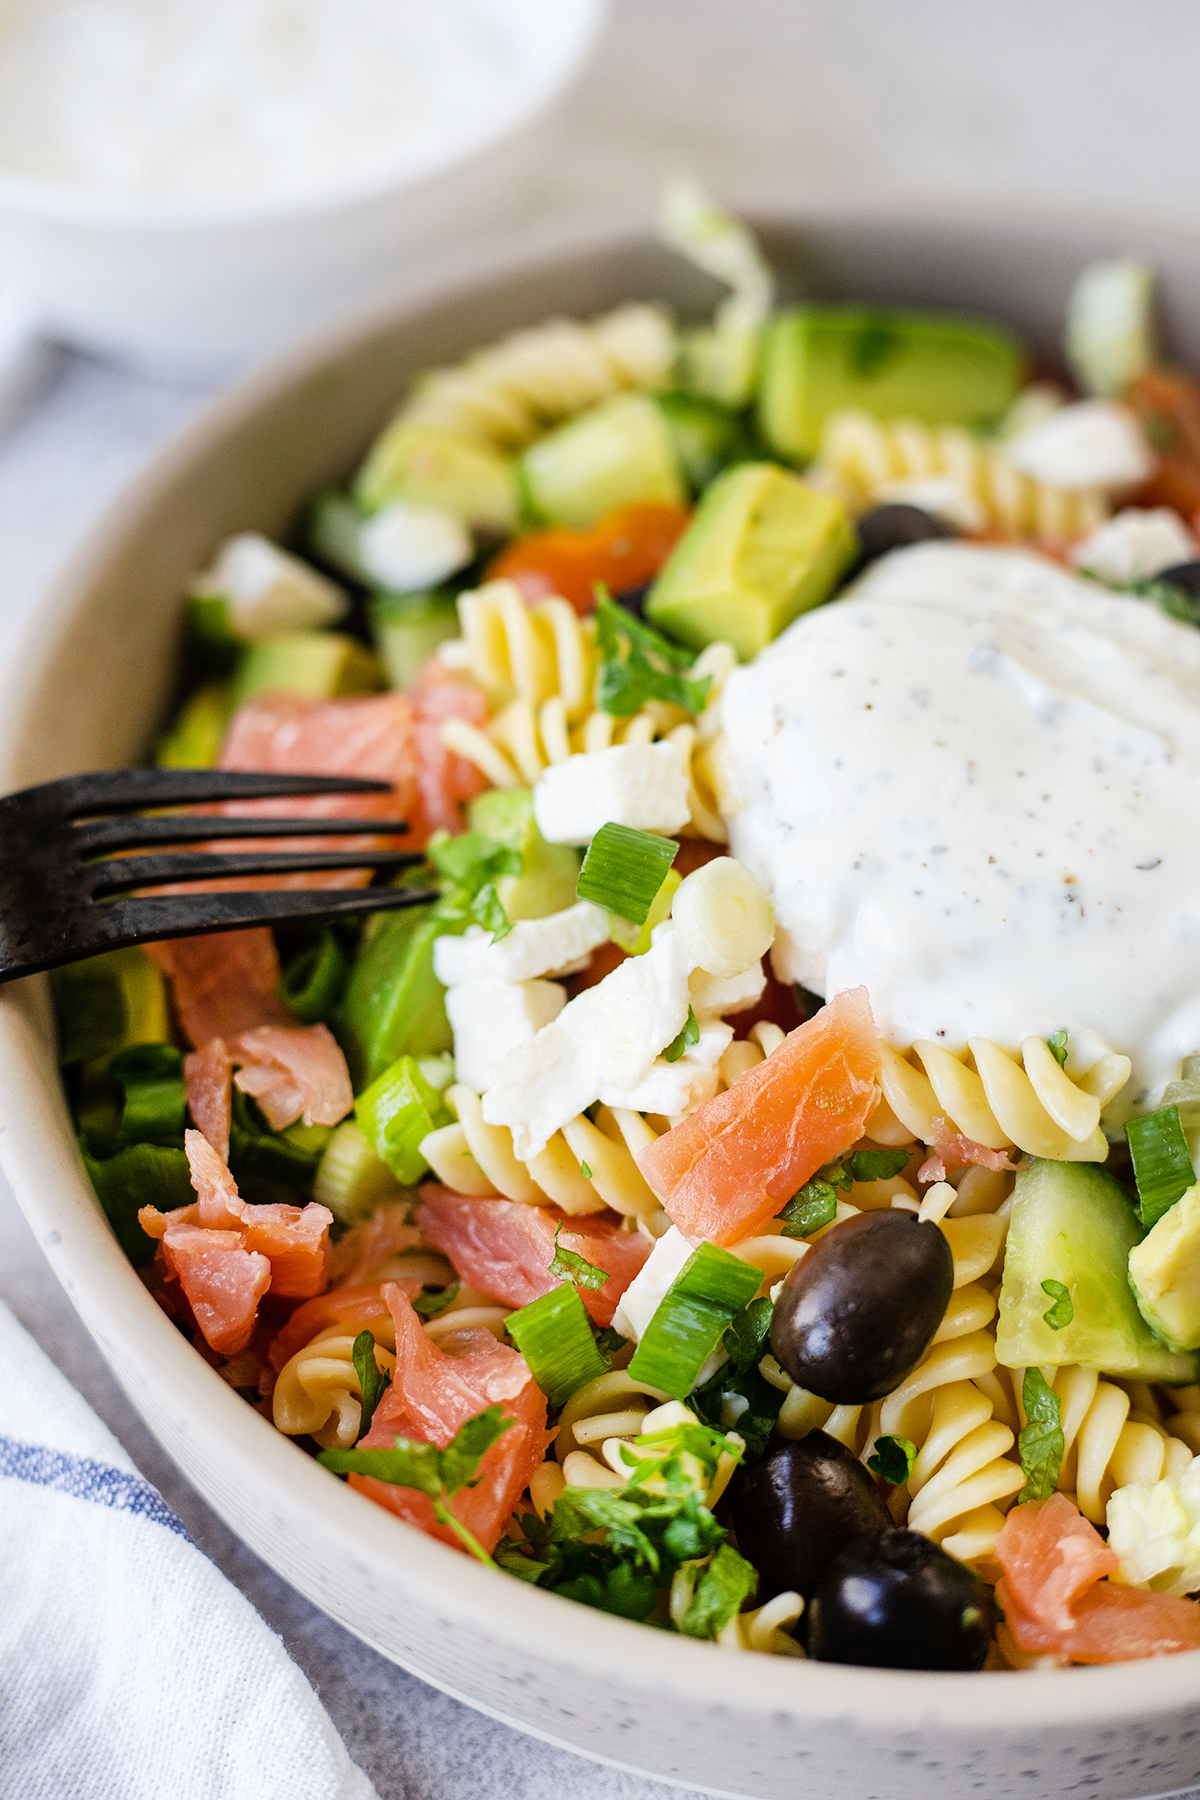 healthy, colorful, loaded with flavours #Italianpastasalad #healthysalad #easylunchrecipe #lightdinner #quickrecipes